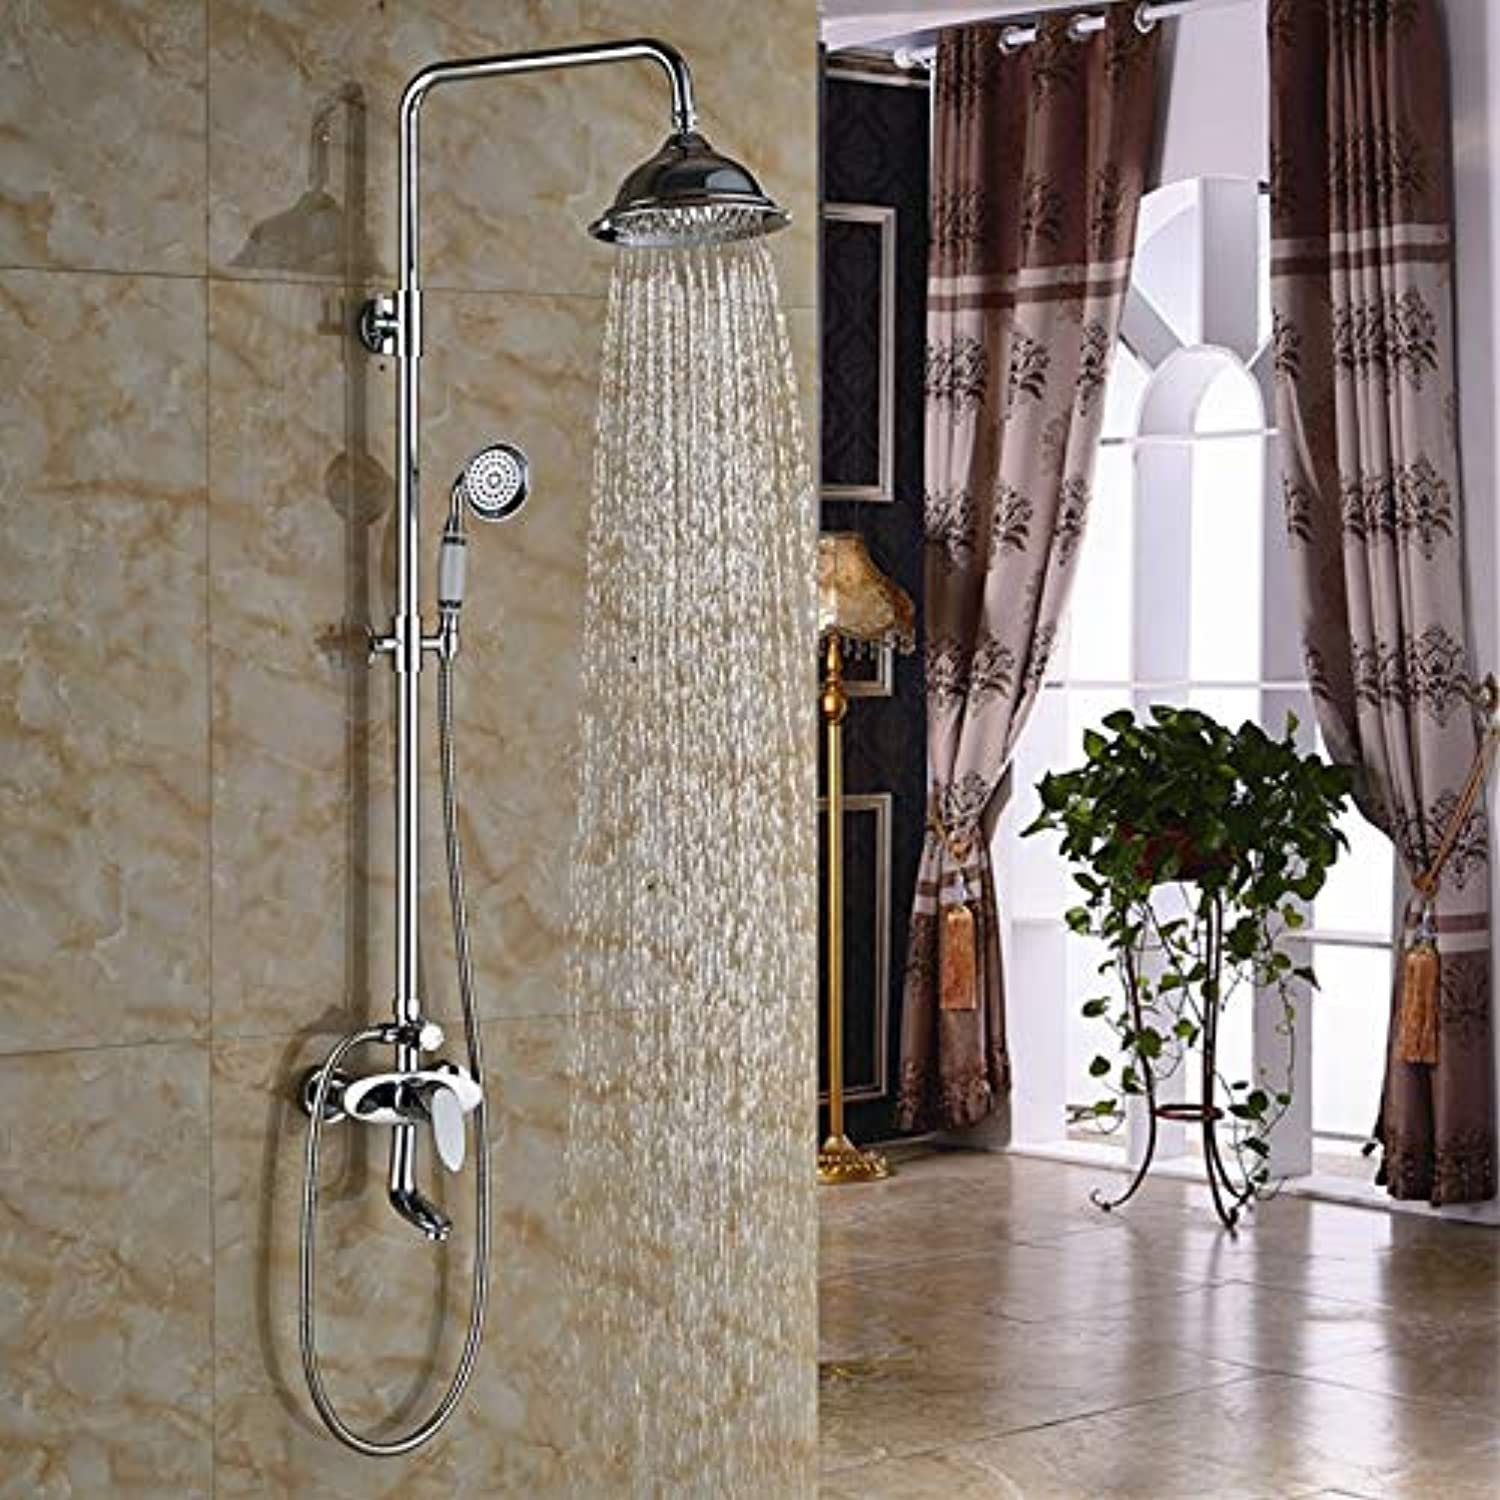 Wall Mount Luxury 8  Brass Rainfall Shower Faucet Set One Handle Swivel Tub Shower Mixer Tap Chrome Finish